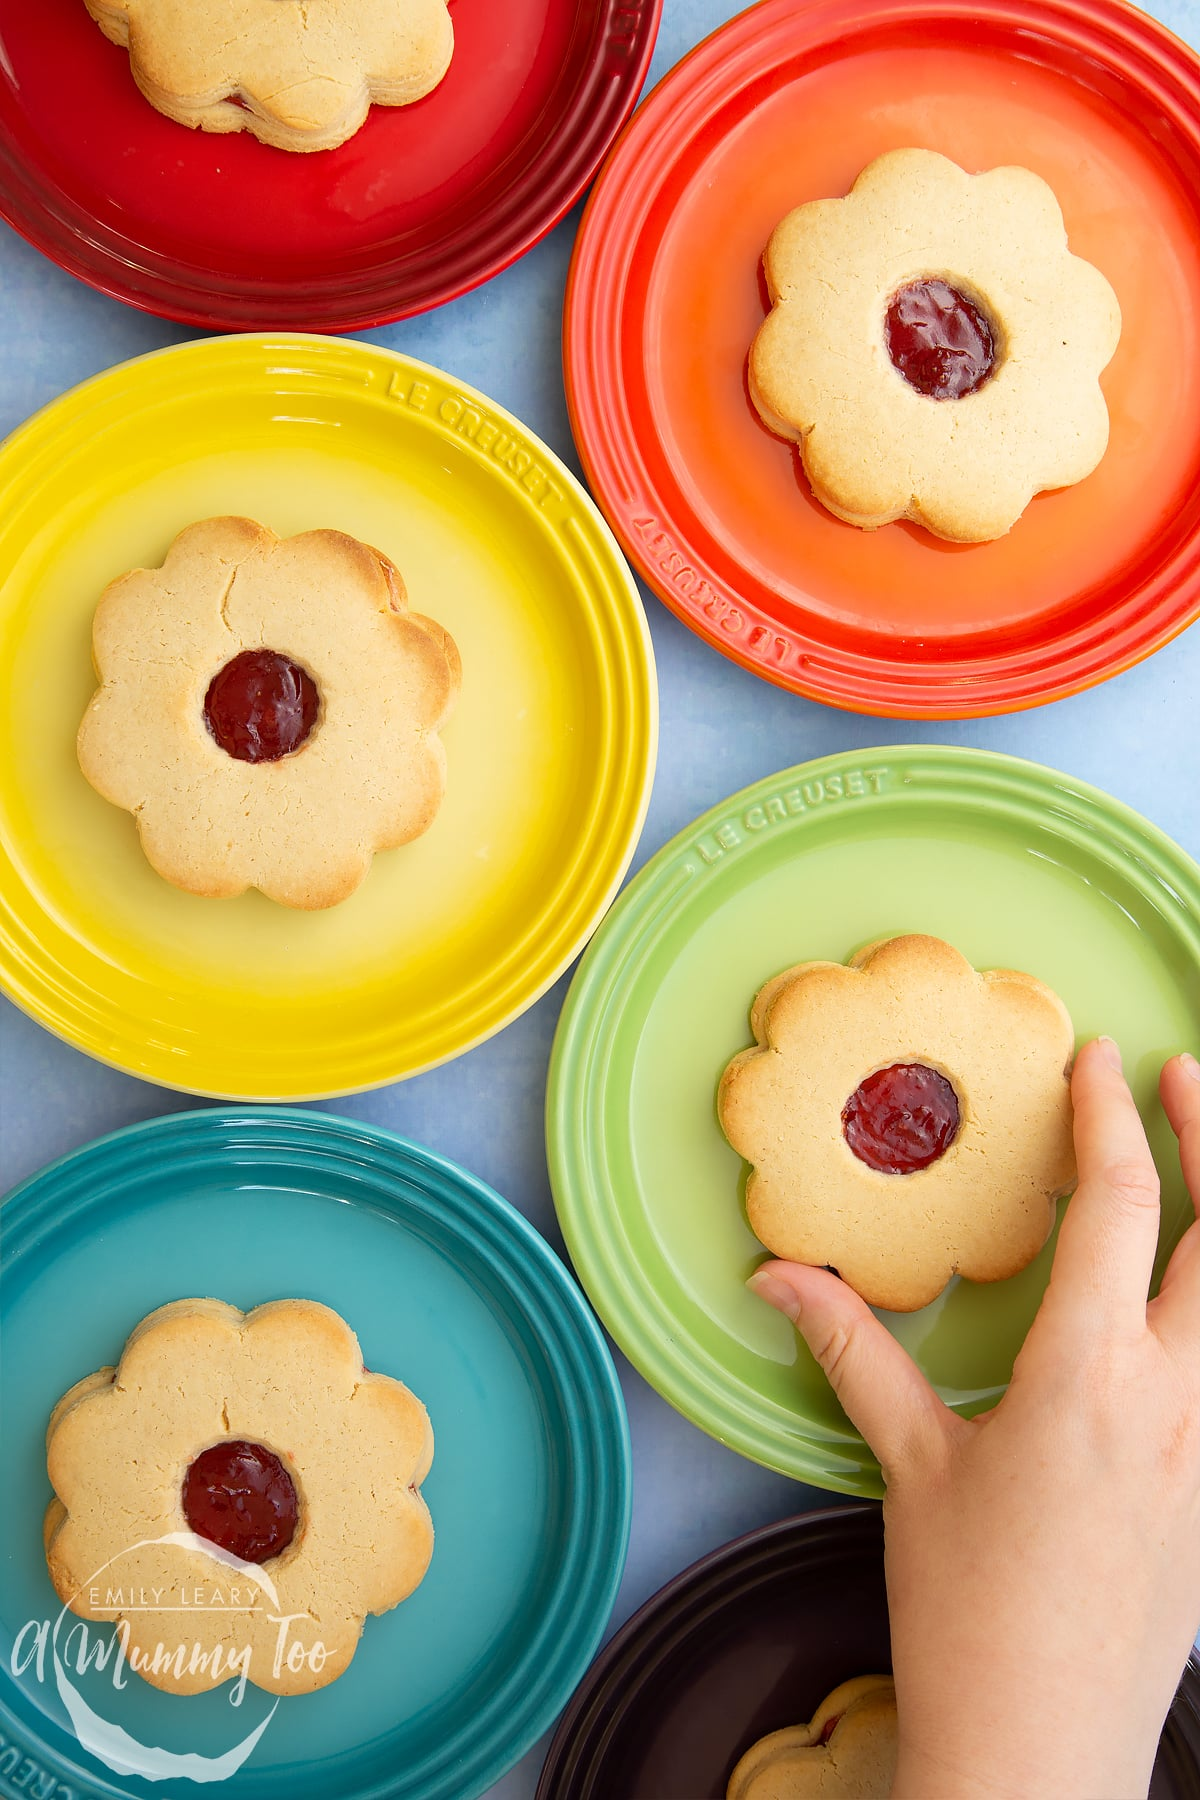 Giant jammie dodgers arranged on a variety of coloured small plates. A hand reaches in to take one from the green plate.